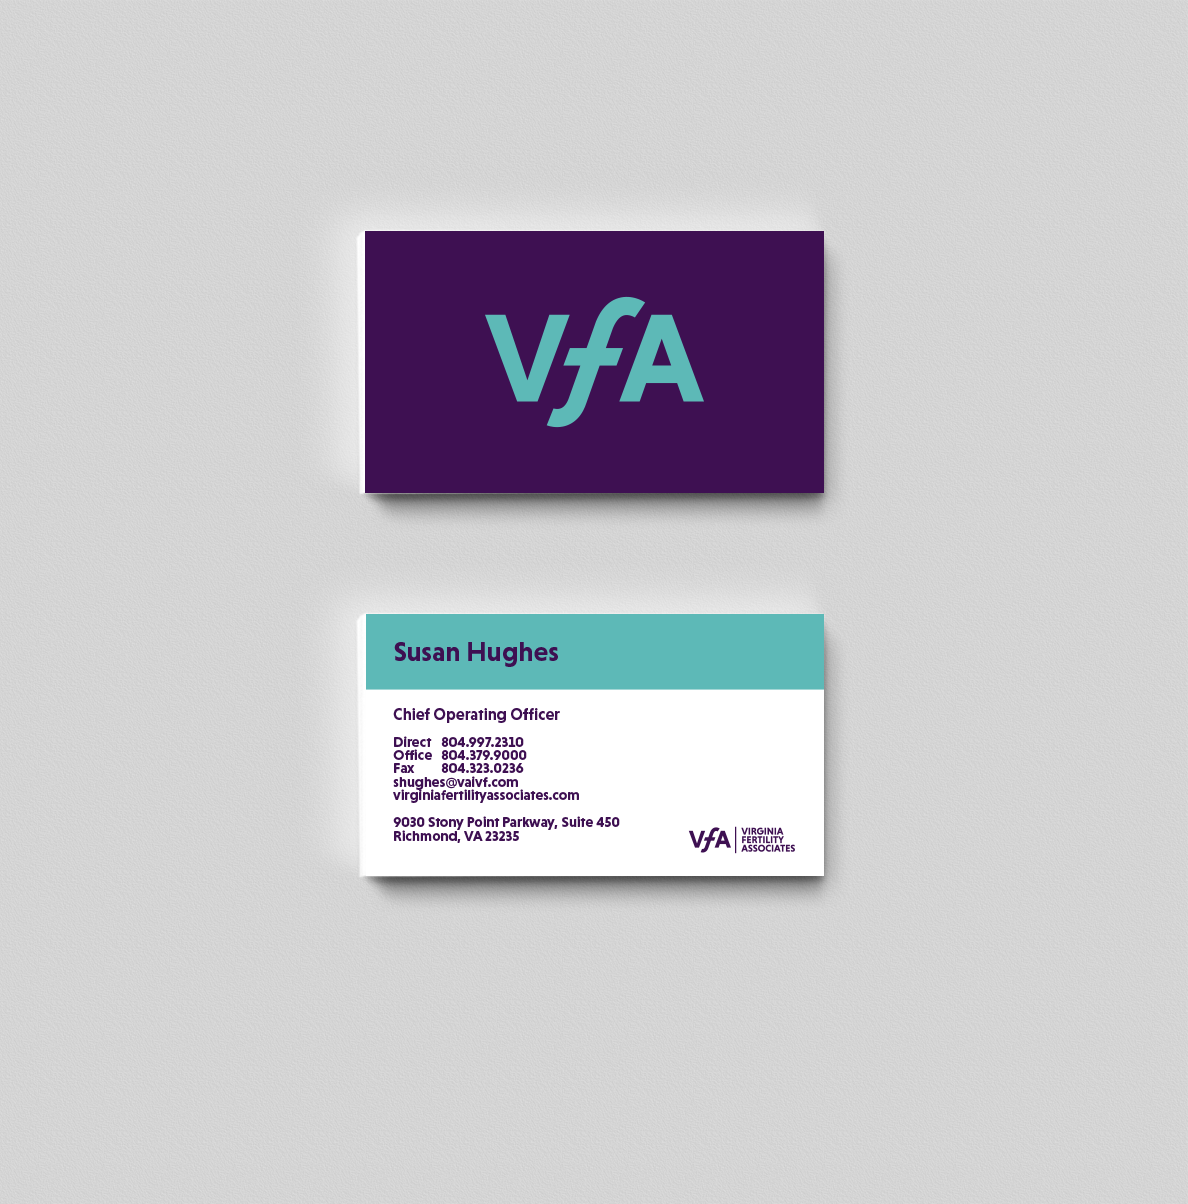 Virginia fertility associates on behance business cards reheart Images